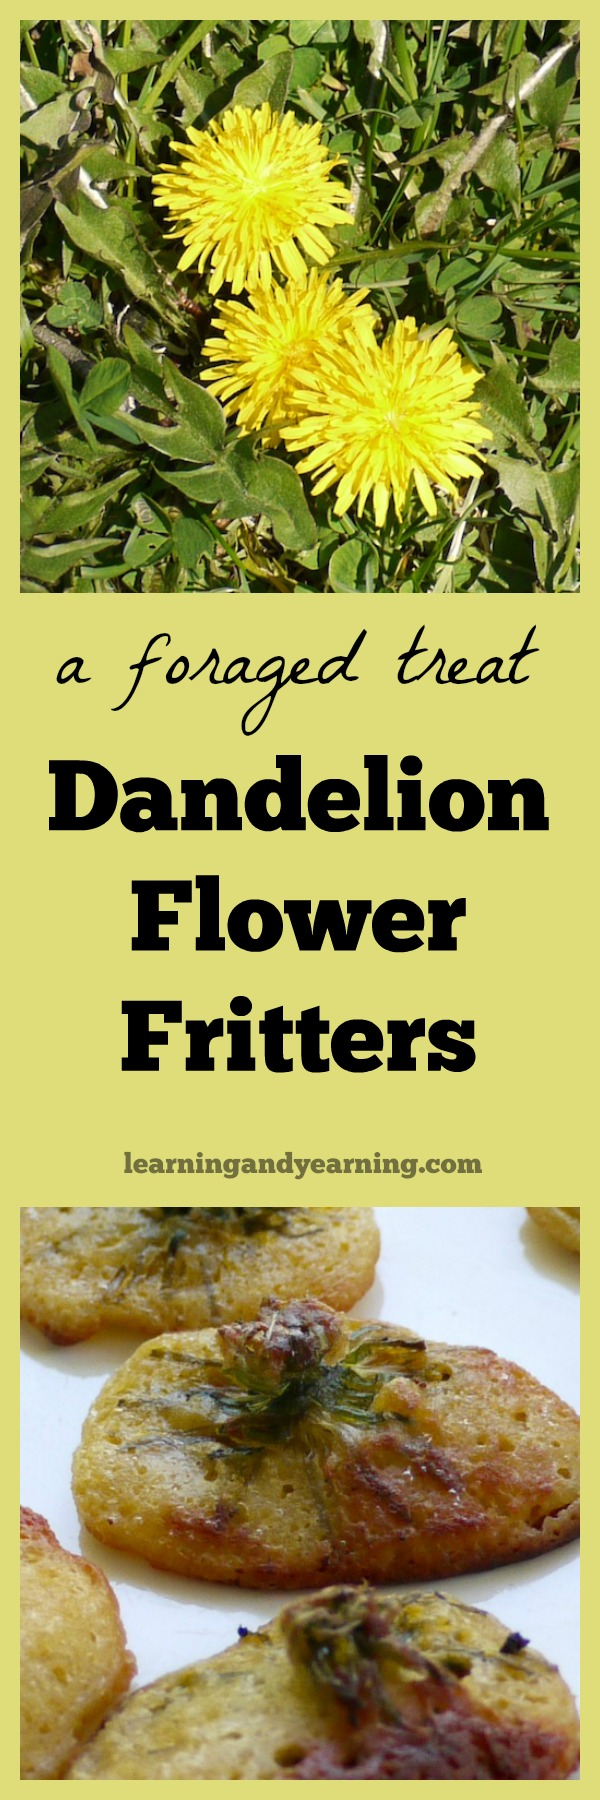 dandelion flowers and fritters